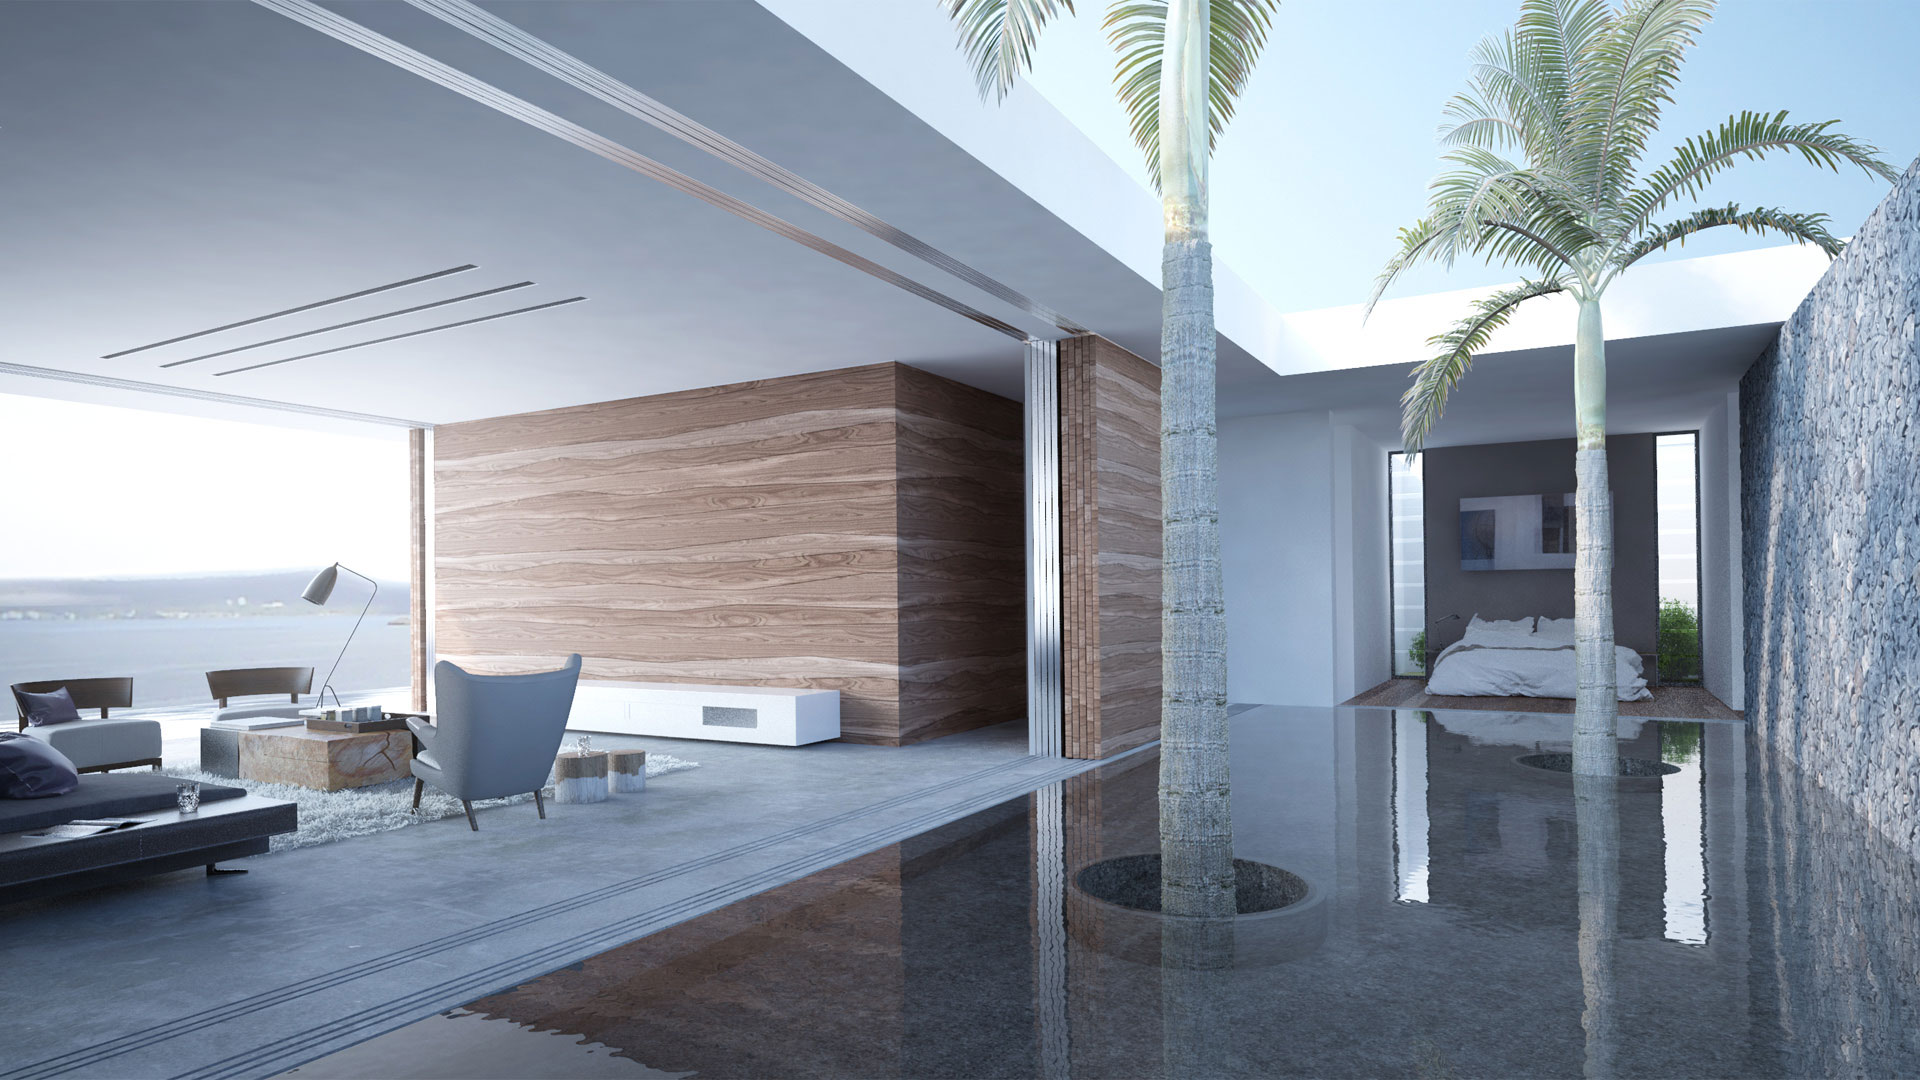 Luxury home in Mayotte - 3D architectural visualisation Terri Brown 3DS Max Vray Marvelous Designer Pool Lounge Coast